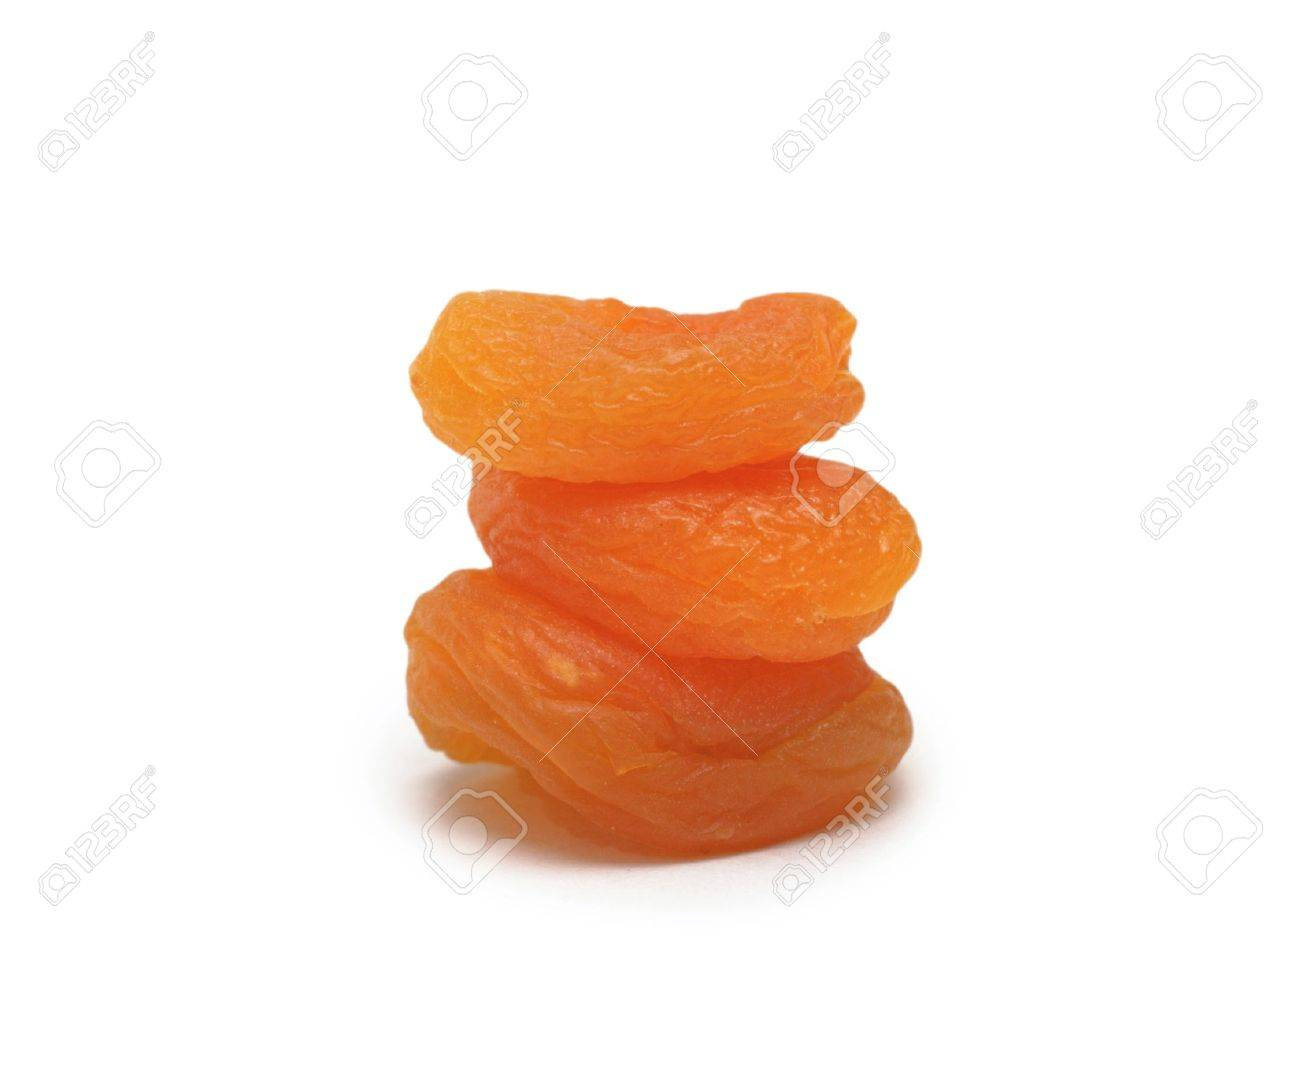 Pile of dried pitted and halved apricot, isolated on white background Stock Photo - 5785641